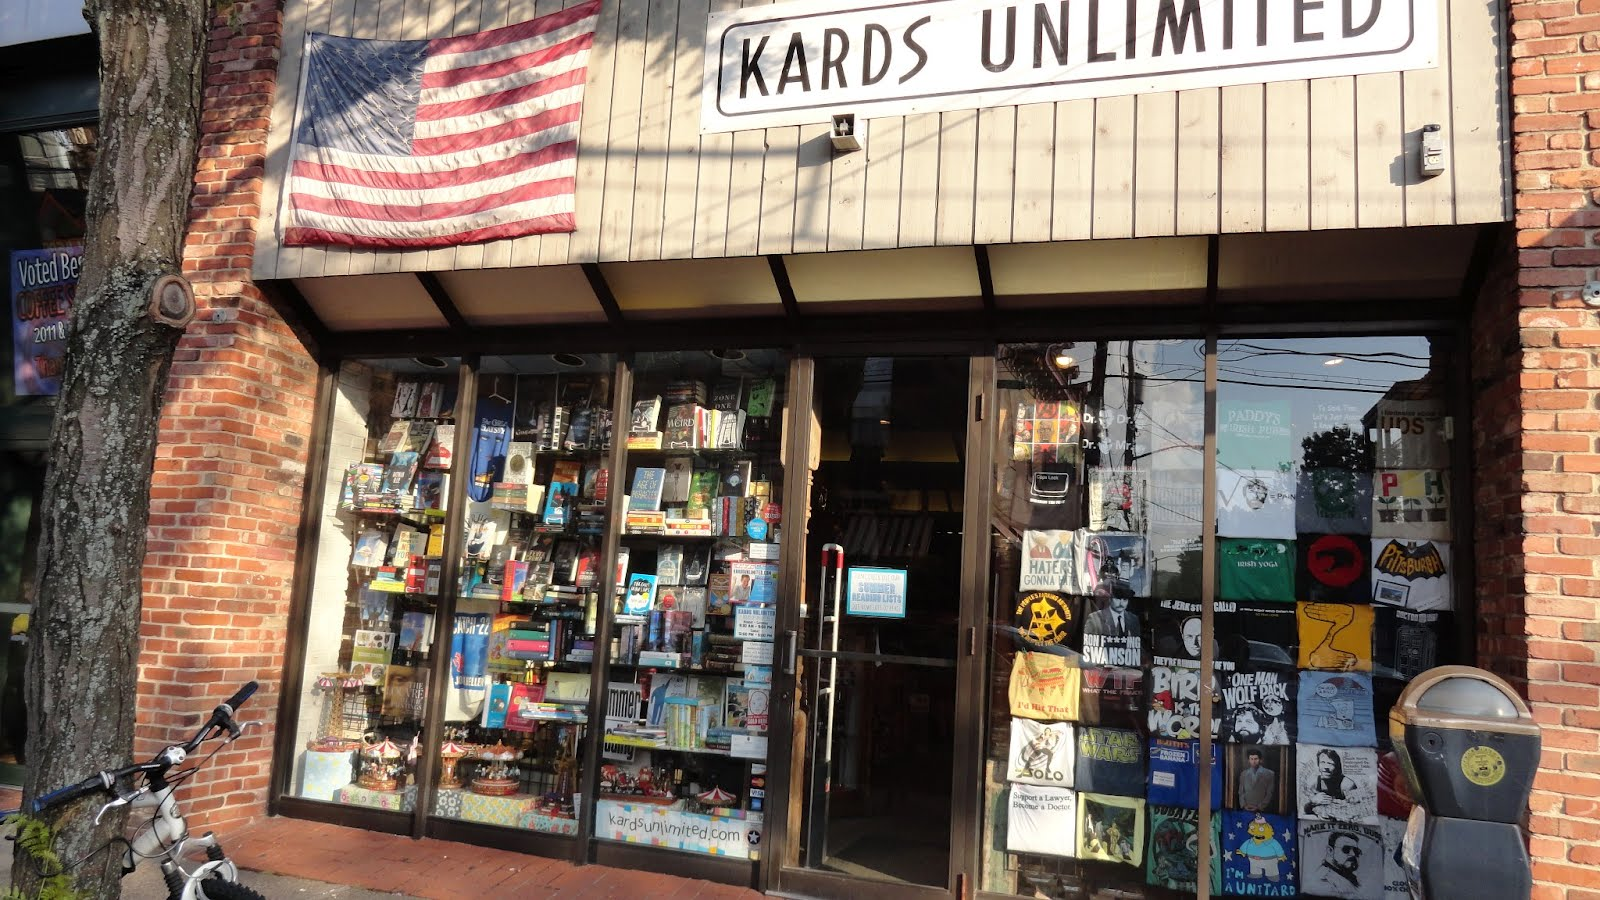 Kards Unlimited storefront